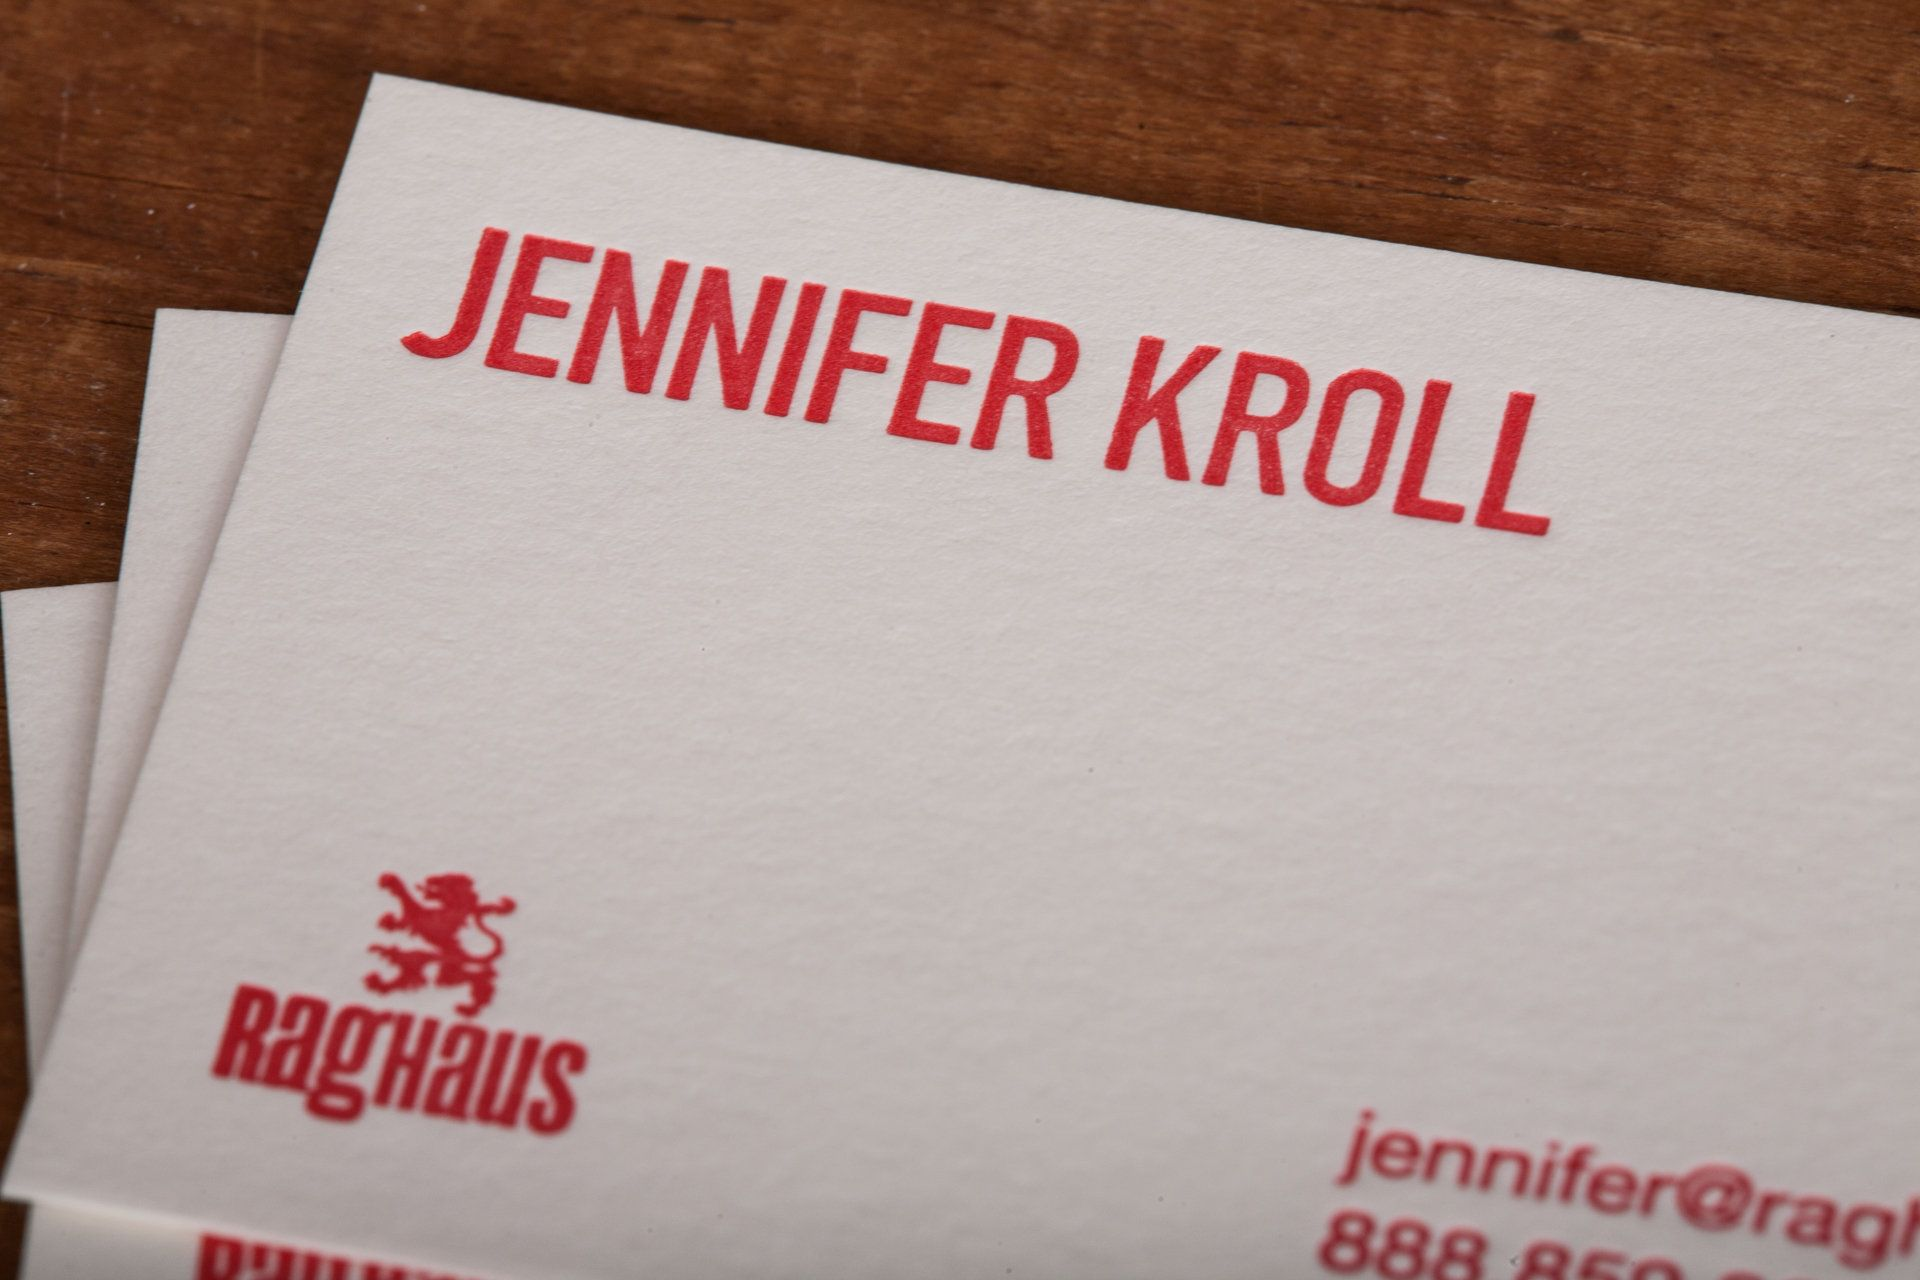 Personalized letterpress business cards (calling cards) for him or ...